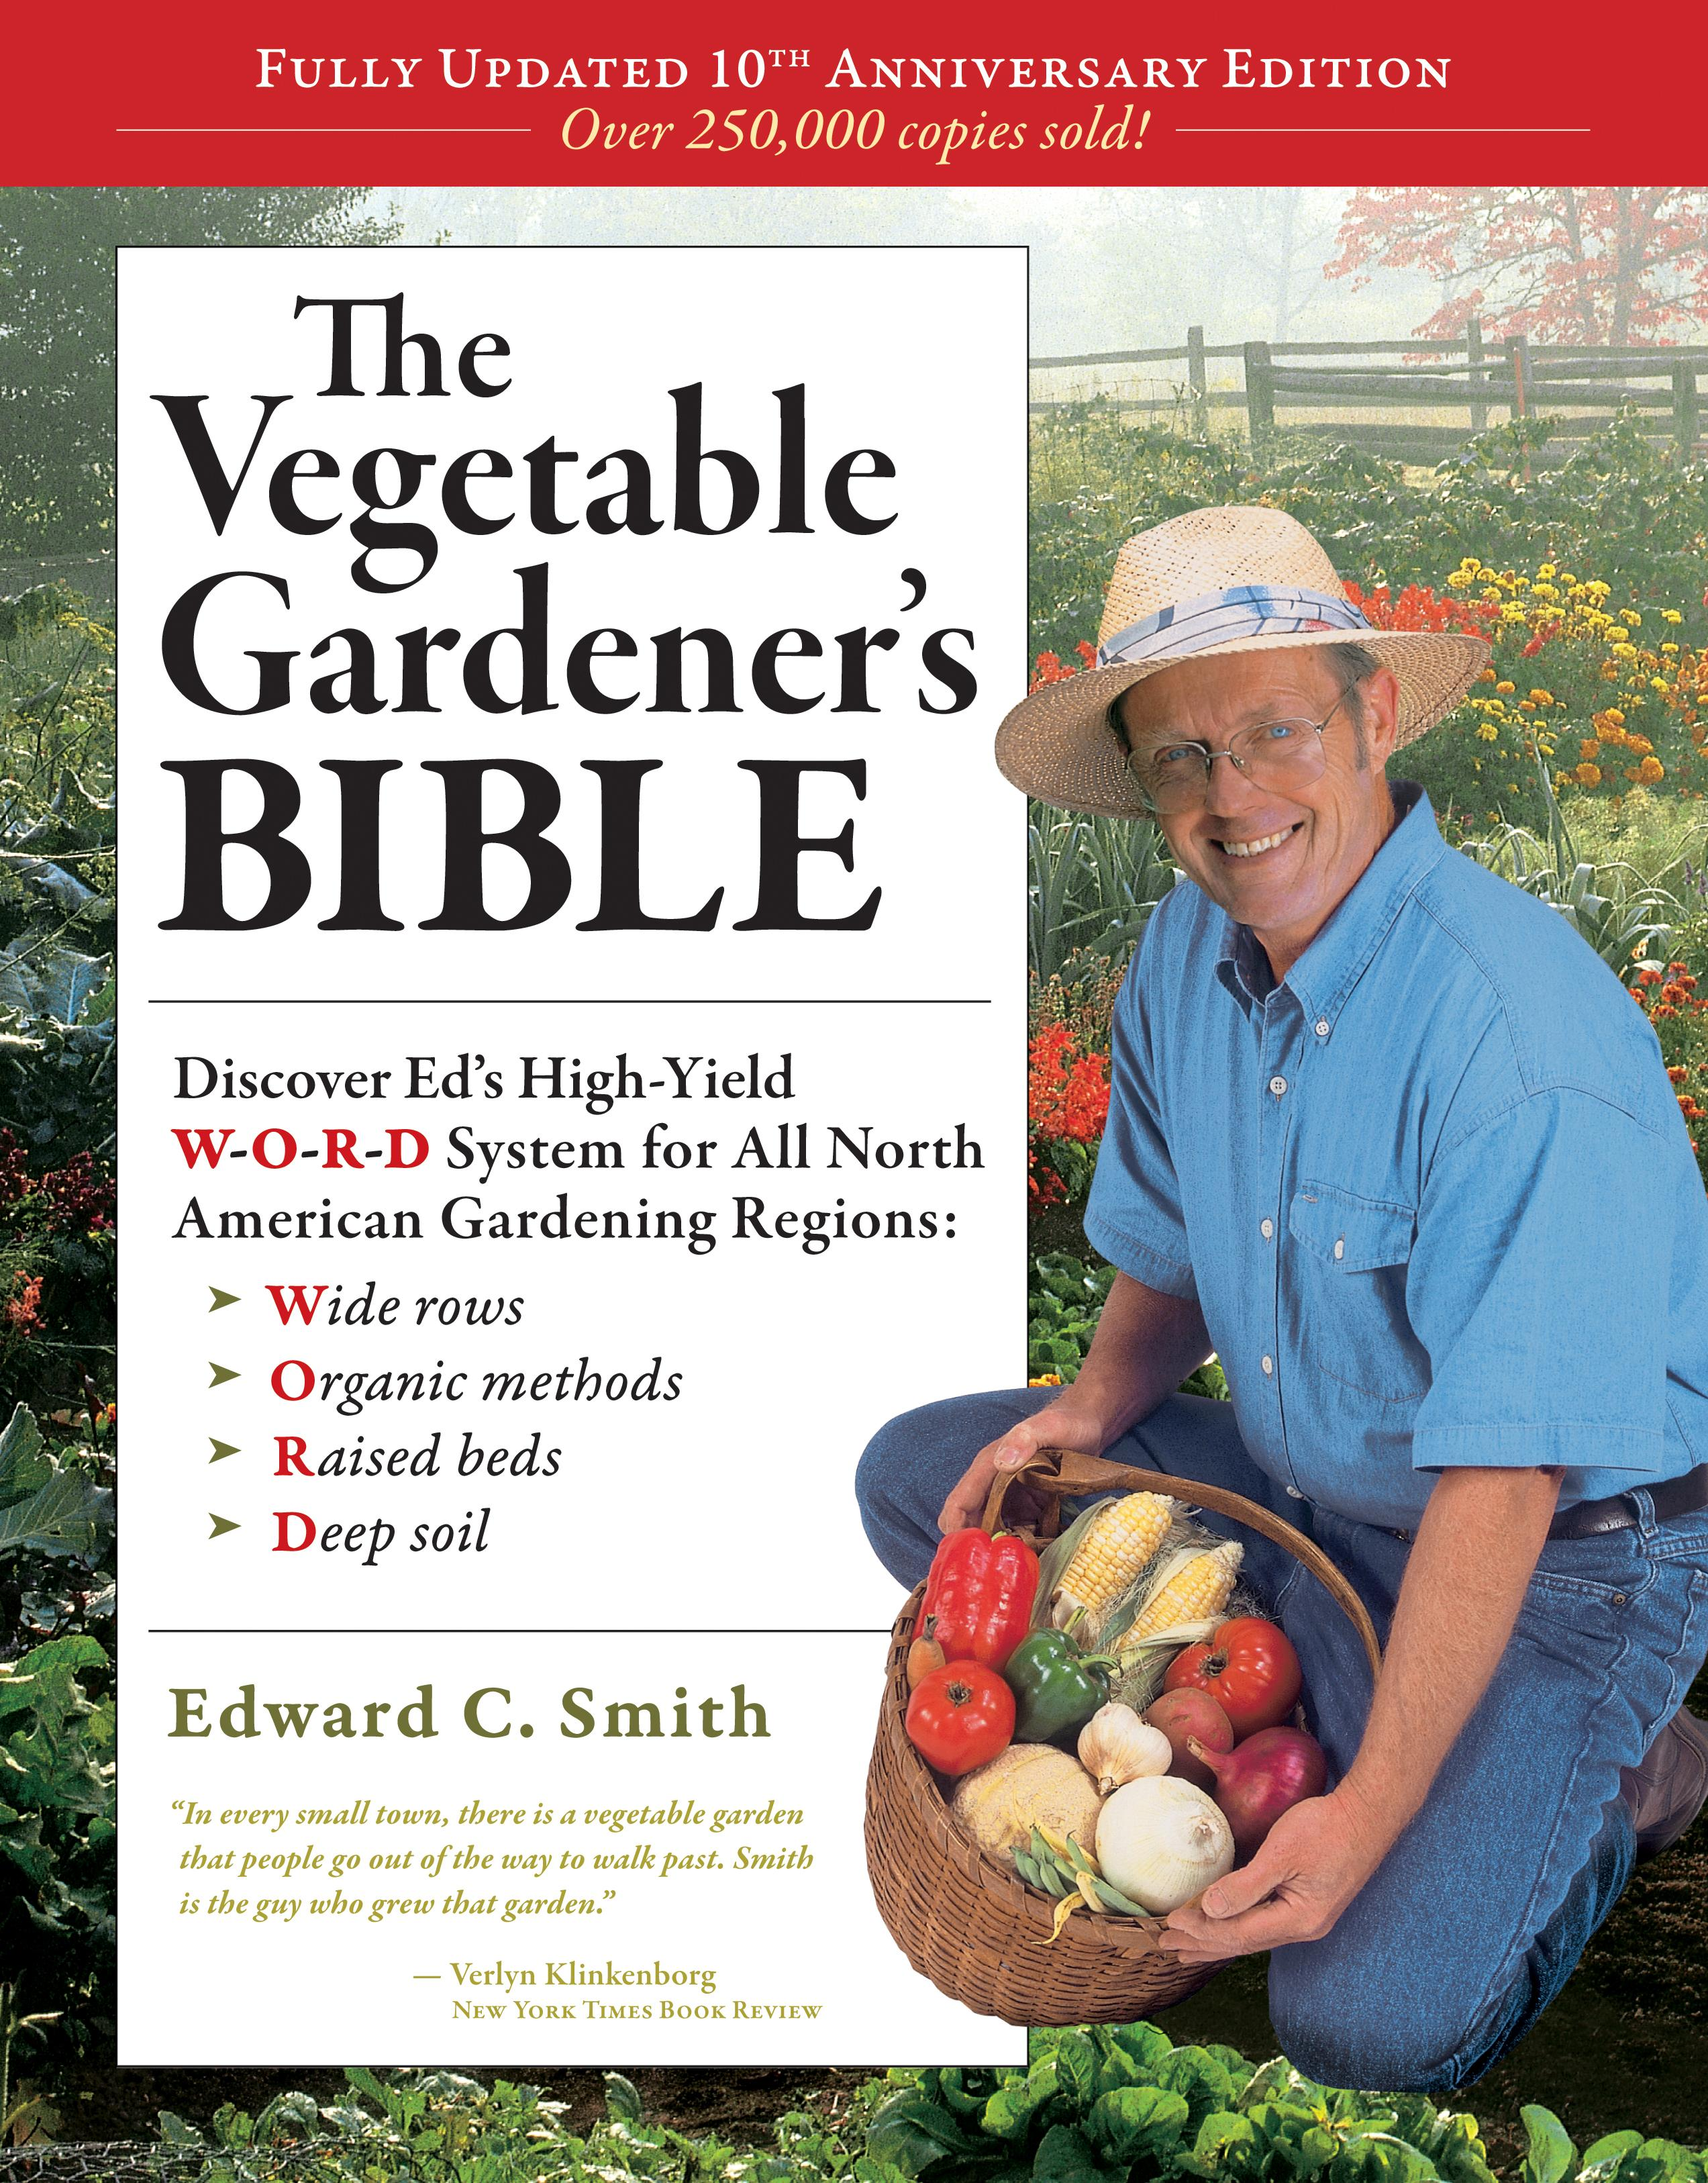 The Vegetable Gardener's Bible (10th Anniversary Edition): Discover Ed's High-Yield W-O-R-D System for All North American Gardening Regions: Wide rows EB9781603422369